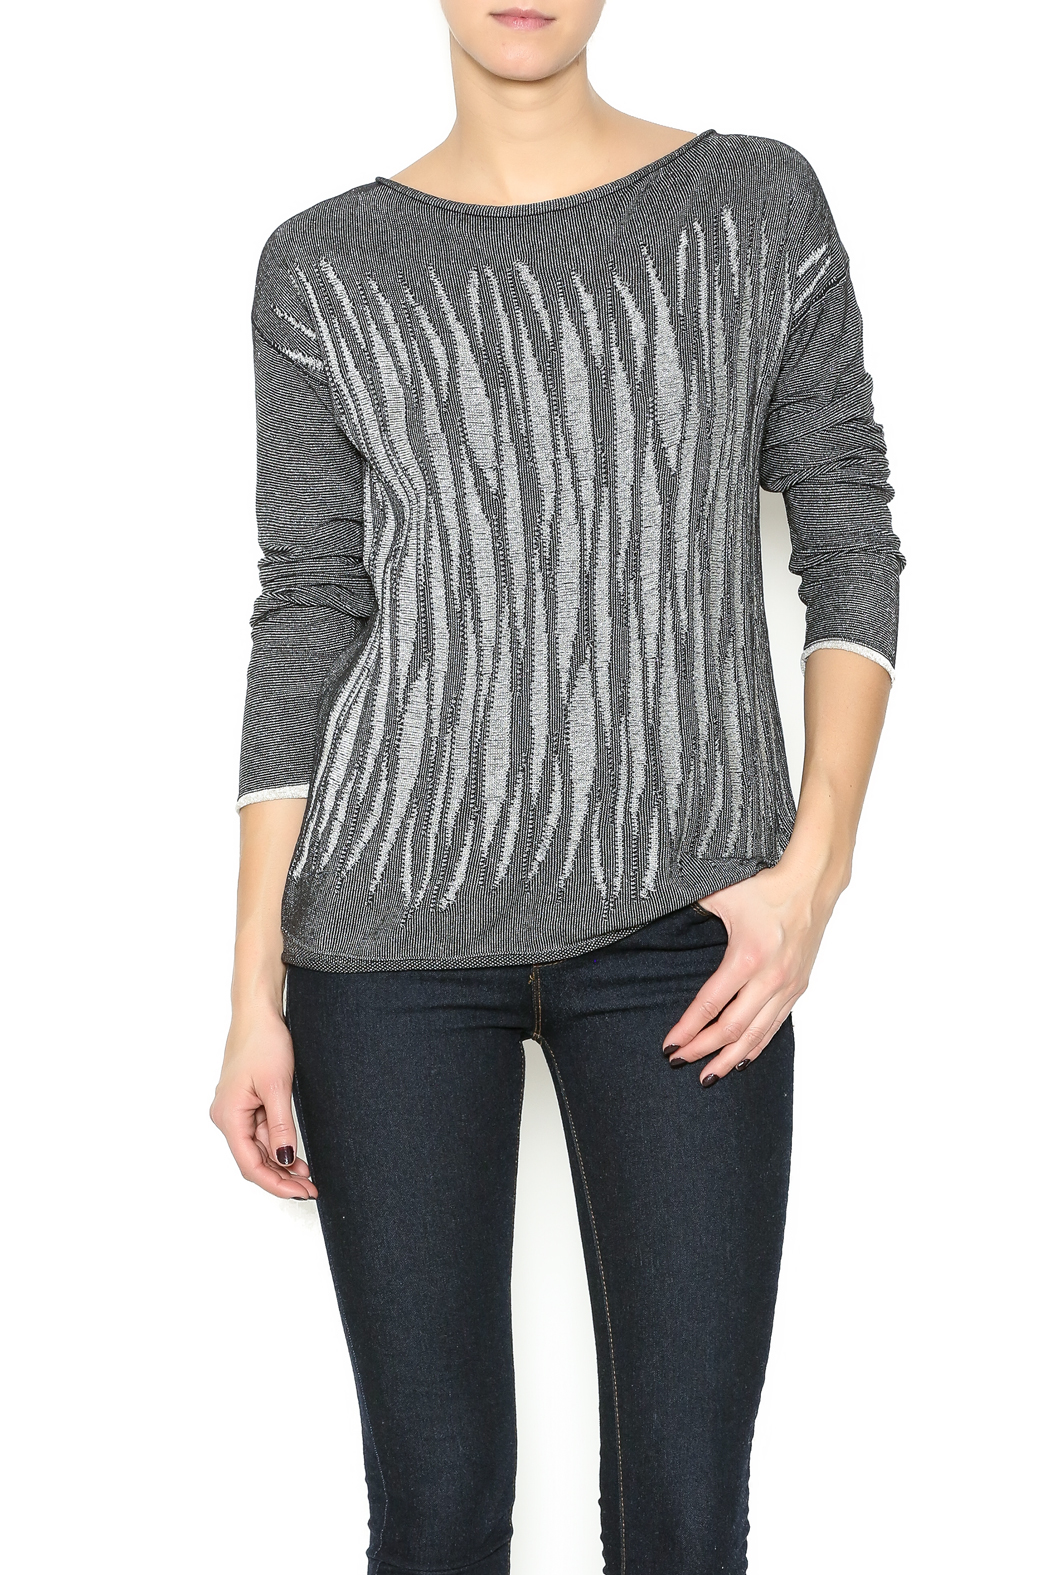 Diktons Dressy Pullover Sweater from Eastern Shore by Marc Randall ...